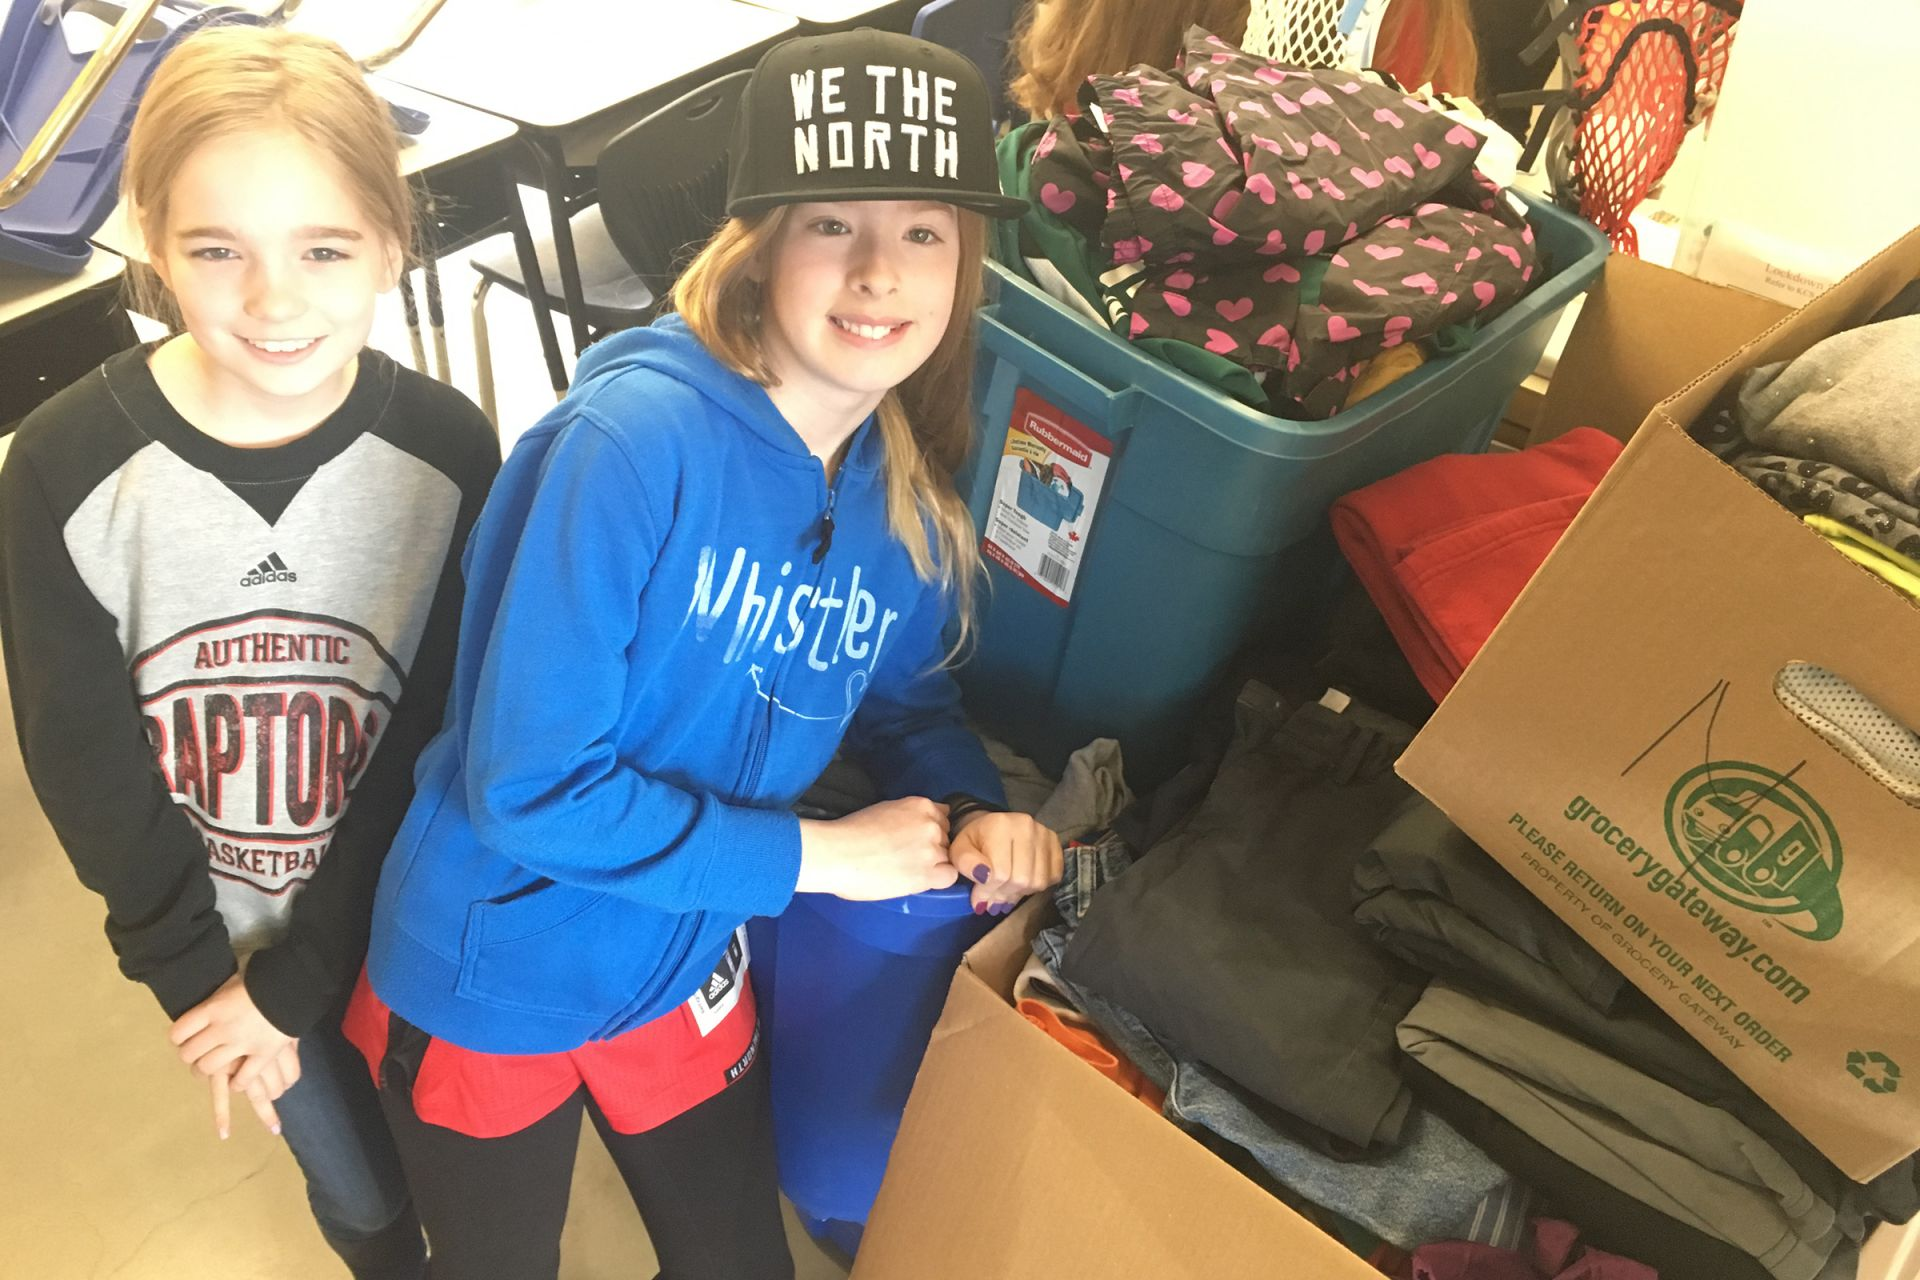 Several grade 5 and 6 students collected clothing to donate to New Circles for distribution to Syrian refugees.